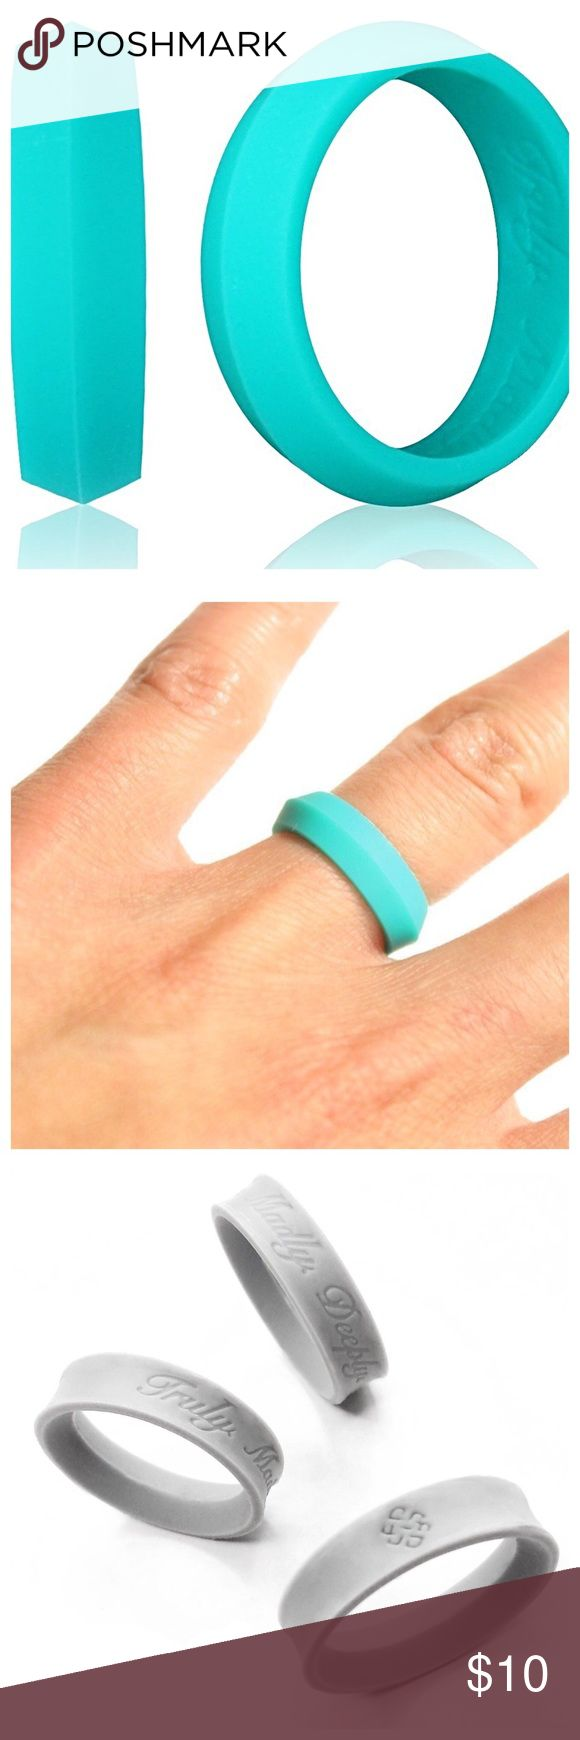 "TURQUOISE 5mm SZ 6 SILICONE WORKOUT WEDDING RING Knot Theory Silicone Wedding Ring for Women & Men. Size 6 in 5mm. Turquoise. Ring is engraved with ""Truly. Madly. Deeply."" and our infinite knot symbol, also known as the love knot. If your finger tends to swell (pregnancy, cold weather, diabetes), this flexible ring can still be worn comfortably. Great for working out! Enjoy! Knot Theory Jewelry Rings"